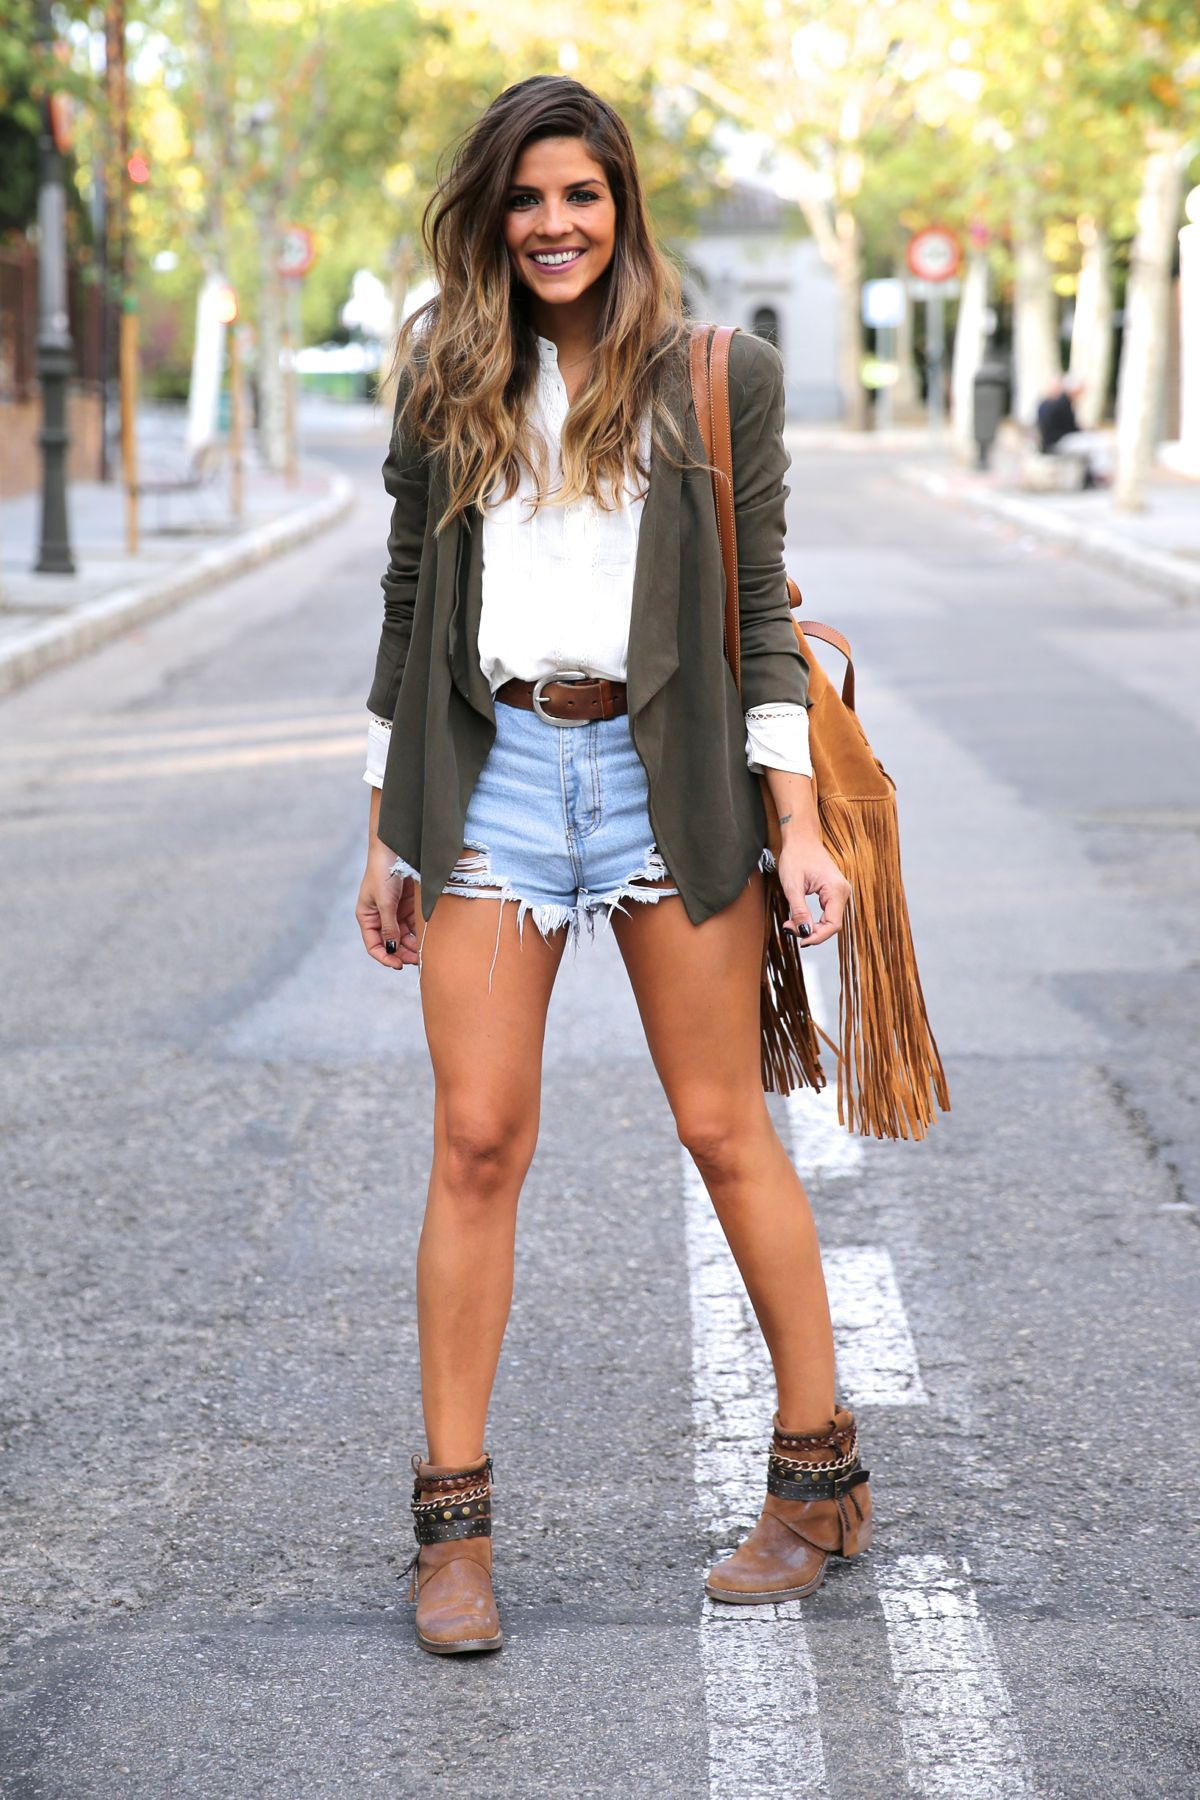 trendy_taste-look-outfit-street_style-ootd-blog-blogger-fashion_spain-moda_españa-boho-hippie-flecos-botines_camperos-cowboy_booties-mochila-backpack-blusa-camisa-denim-shorts-vaqueros-13